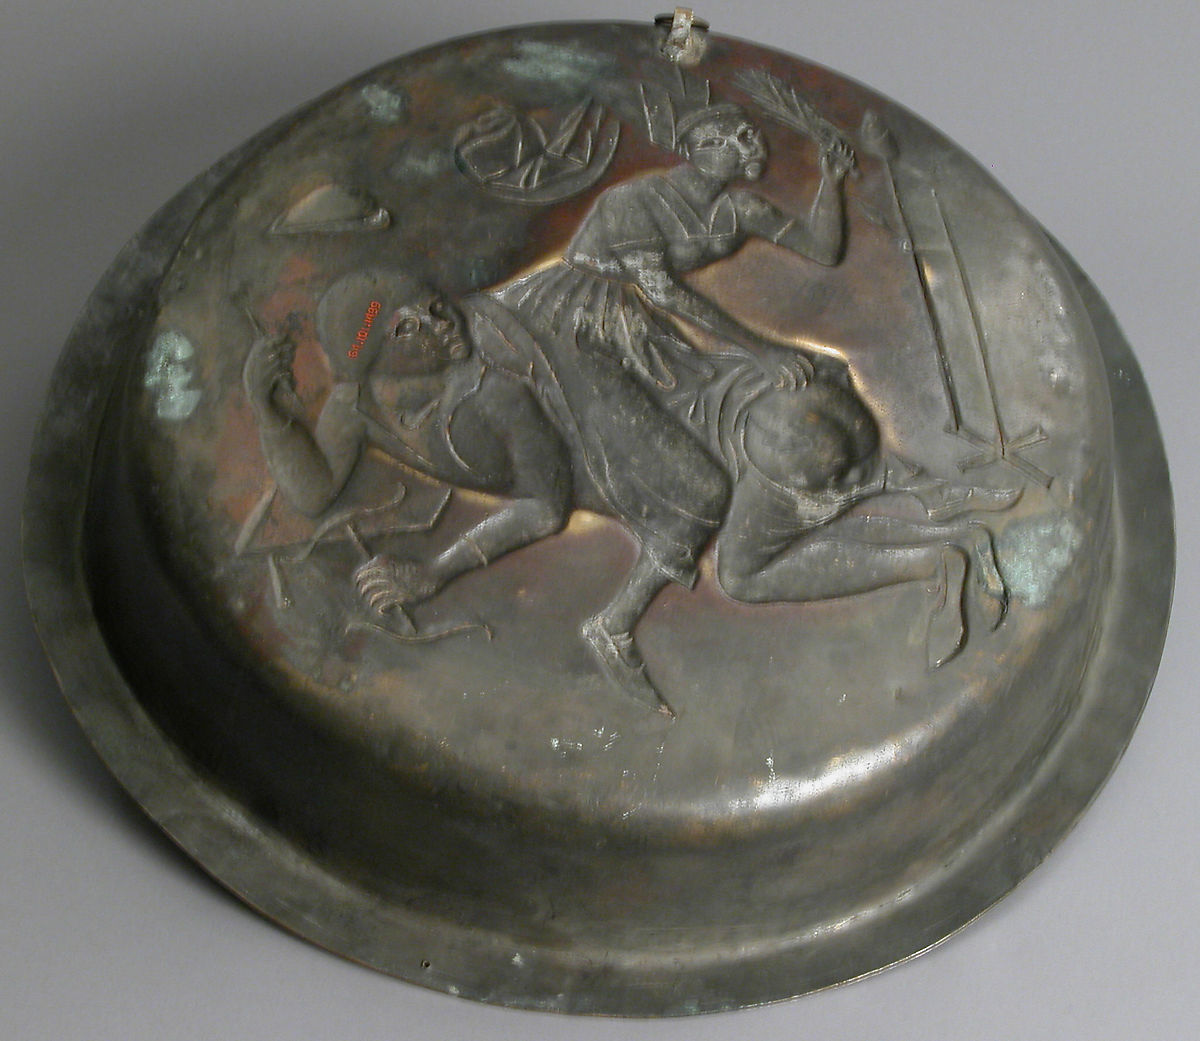 Plate with Wife Beating Husband, Copper alloy, wrought, Netherlandish